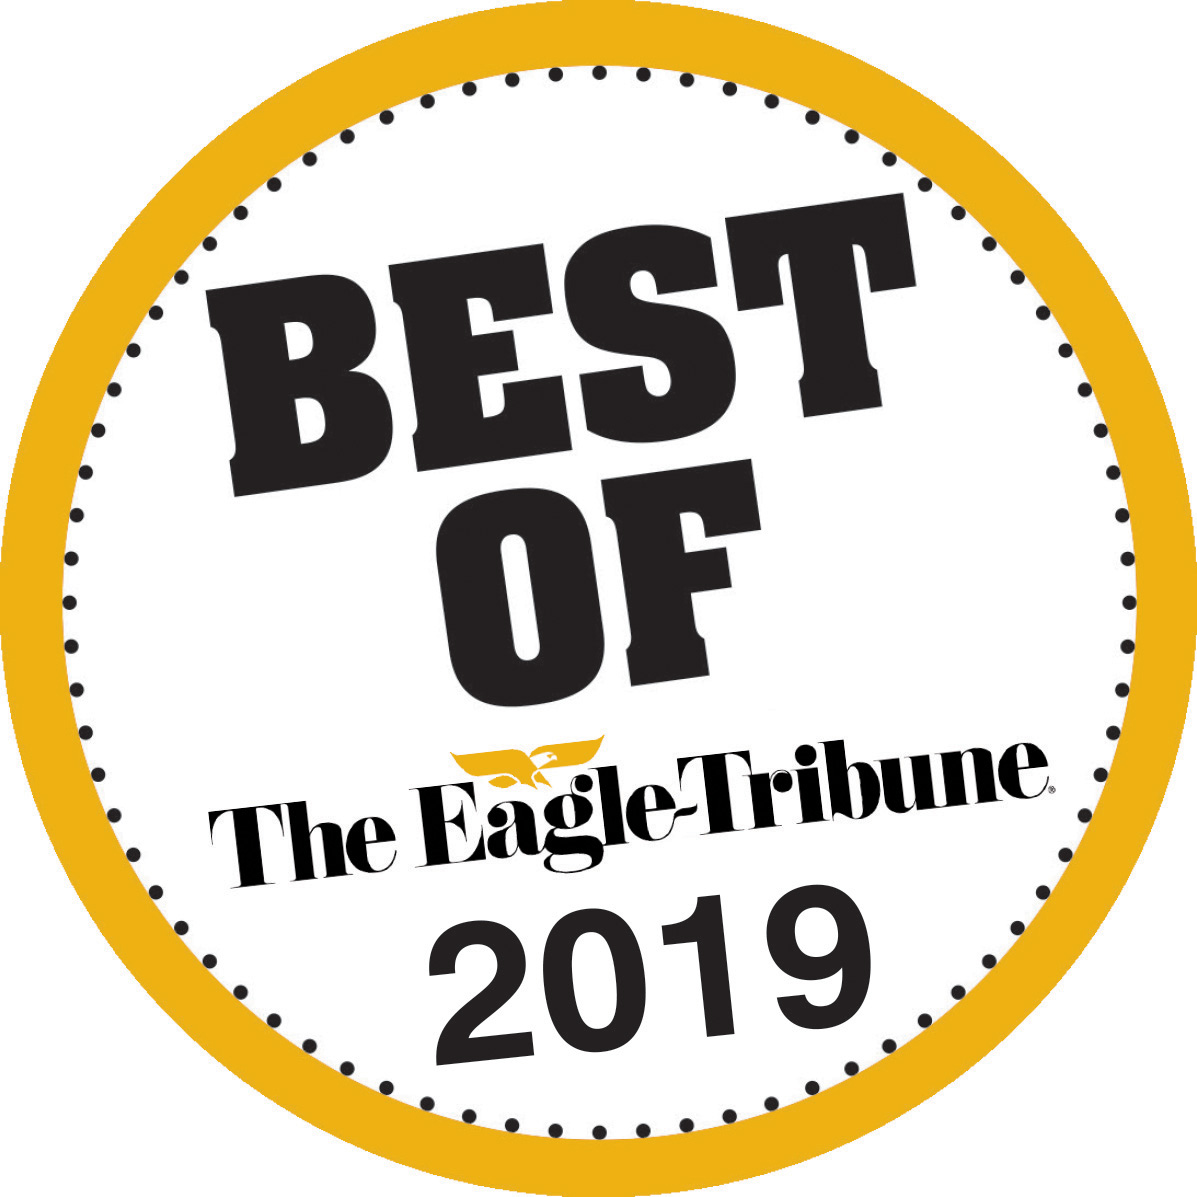 Gold circle with black dotted circle inside. Words: Best of The Eagle-Tribune 2019